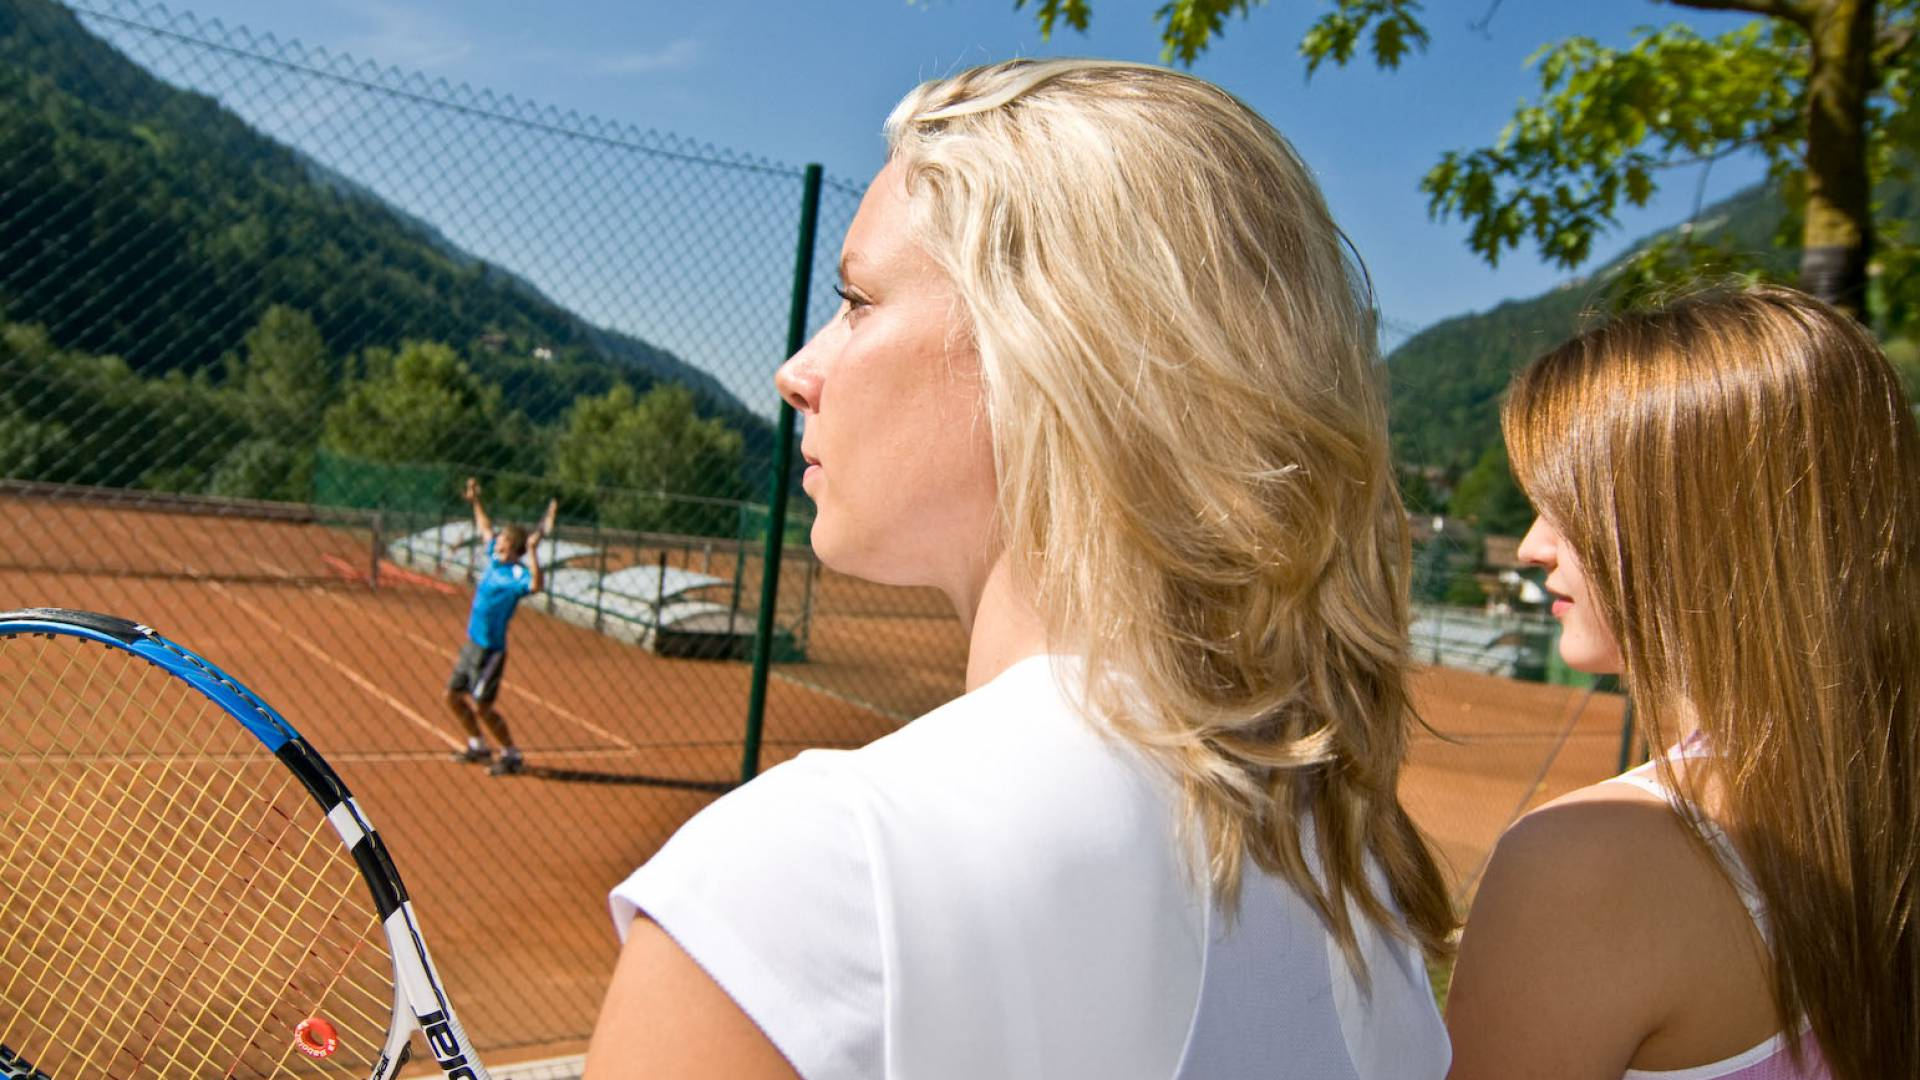 South Tyrol Tennis Paradise Free use of the tennis court